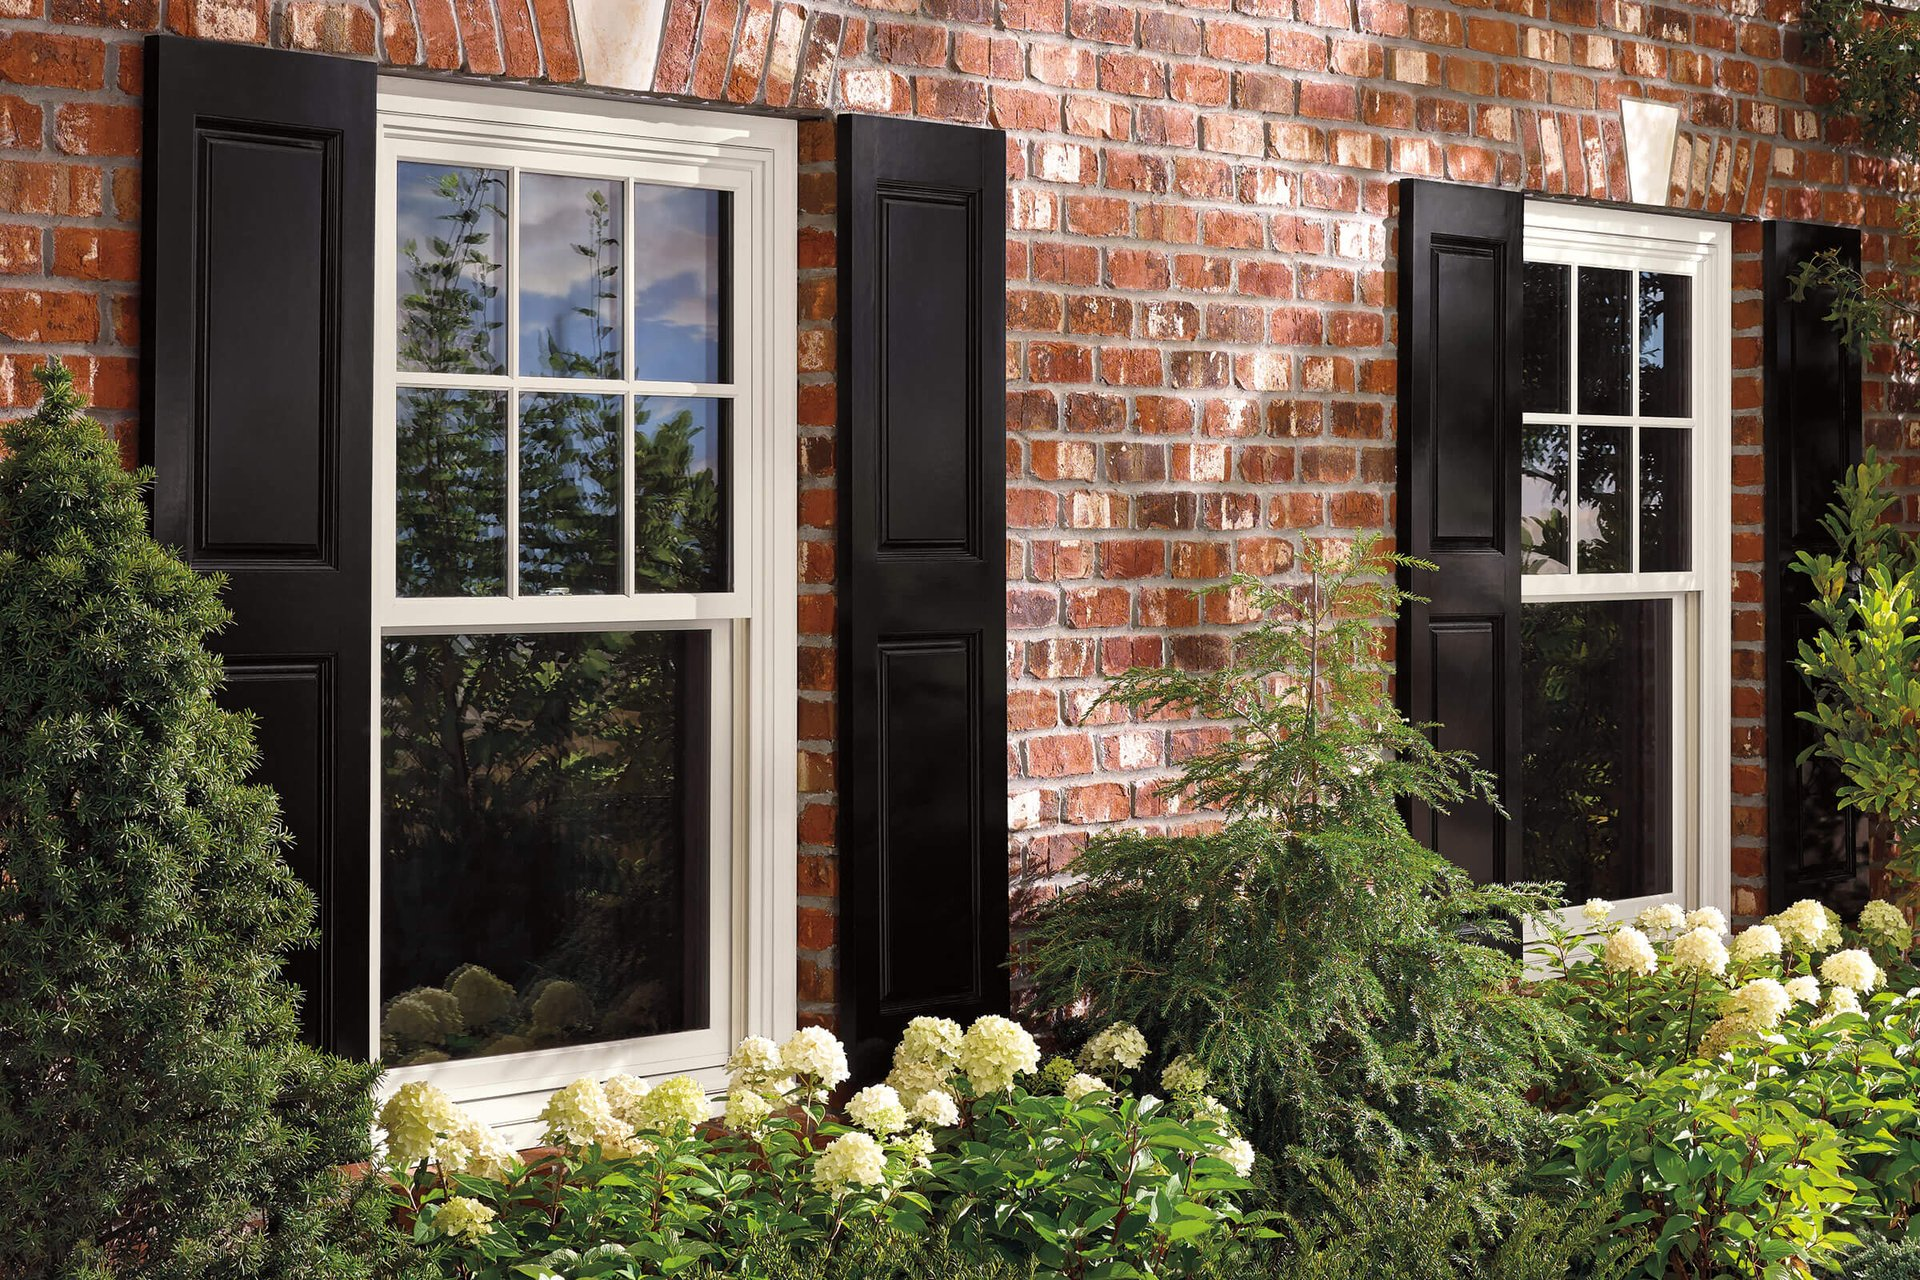 Brick Exterior View Of House With Marvin Elevate Double Hung Insert Windows